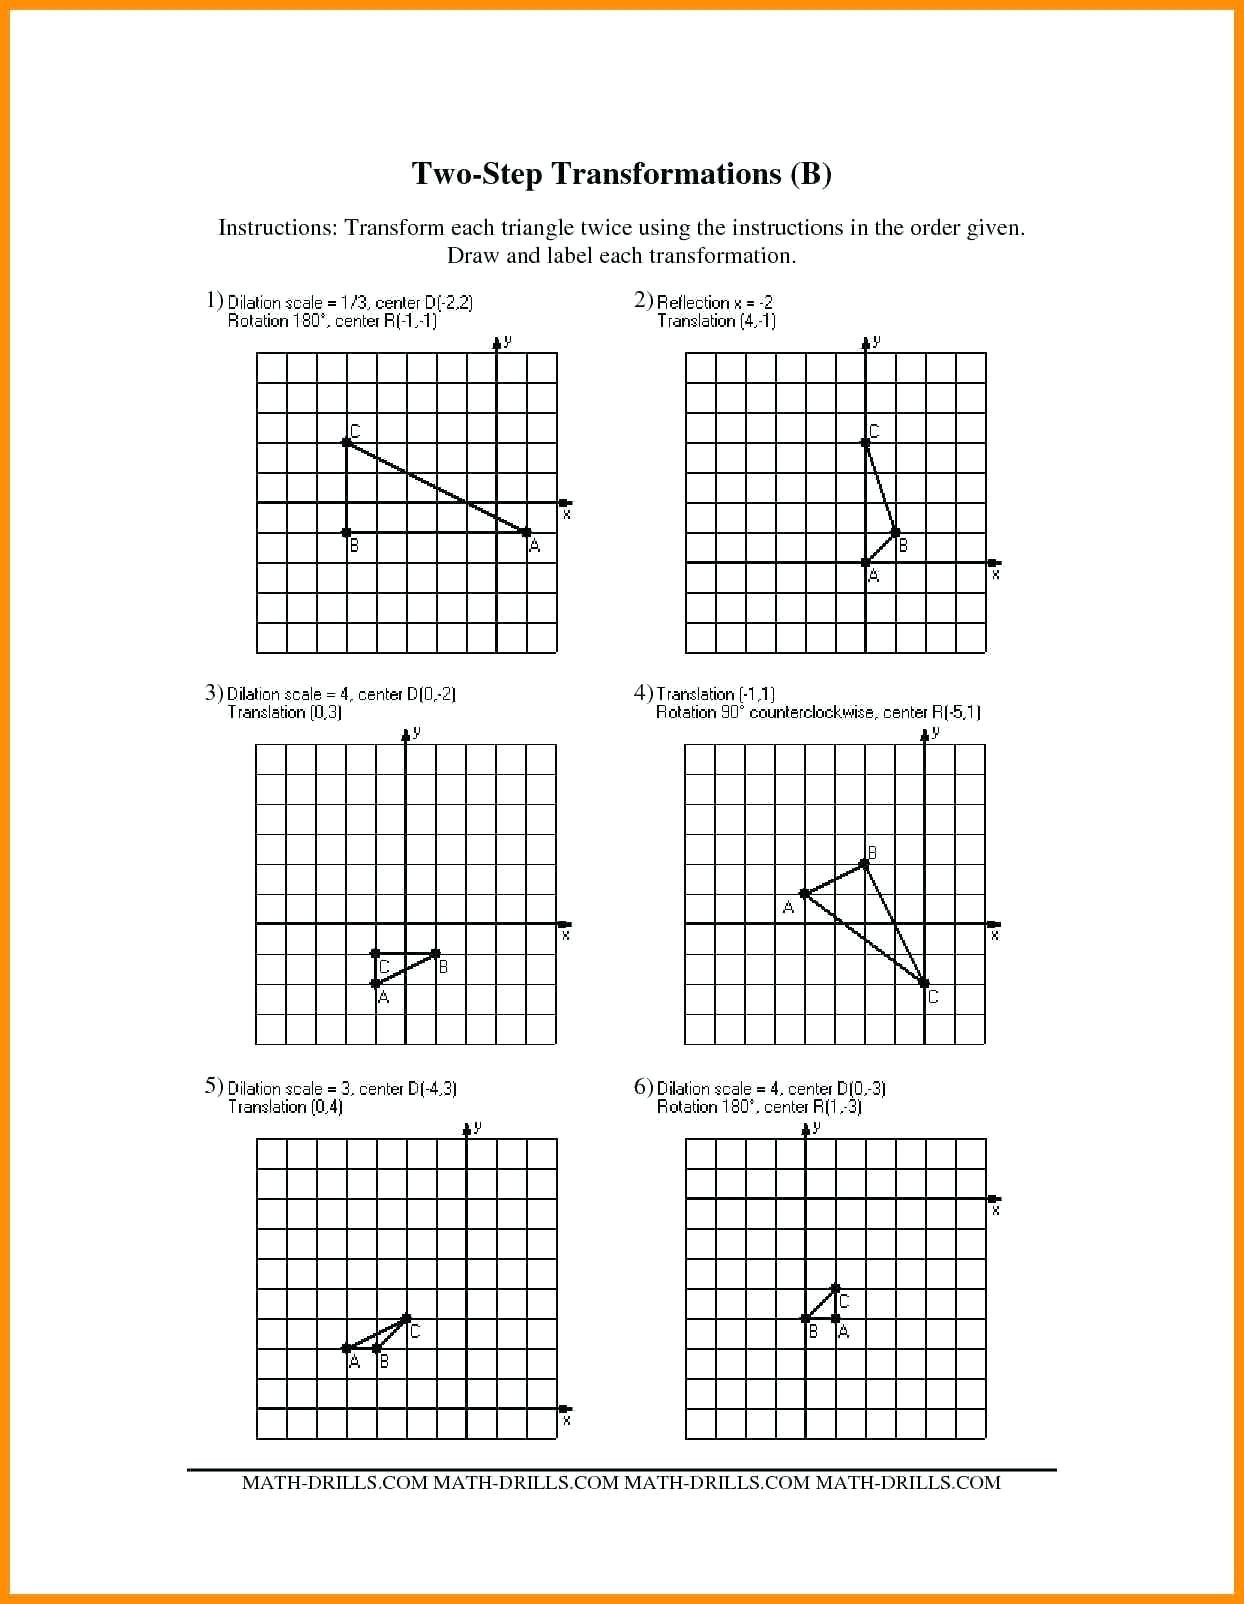 Translation Worksheets Math 3 Free Math Worksheets Third Grade 3 Subtraction Subtract